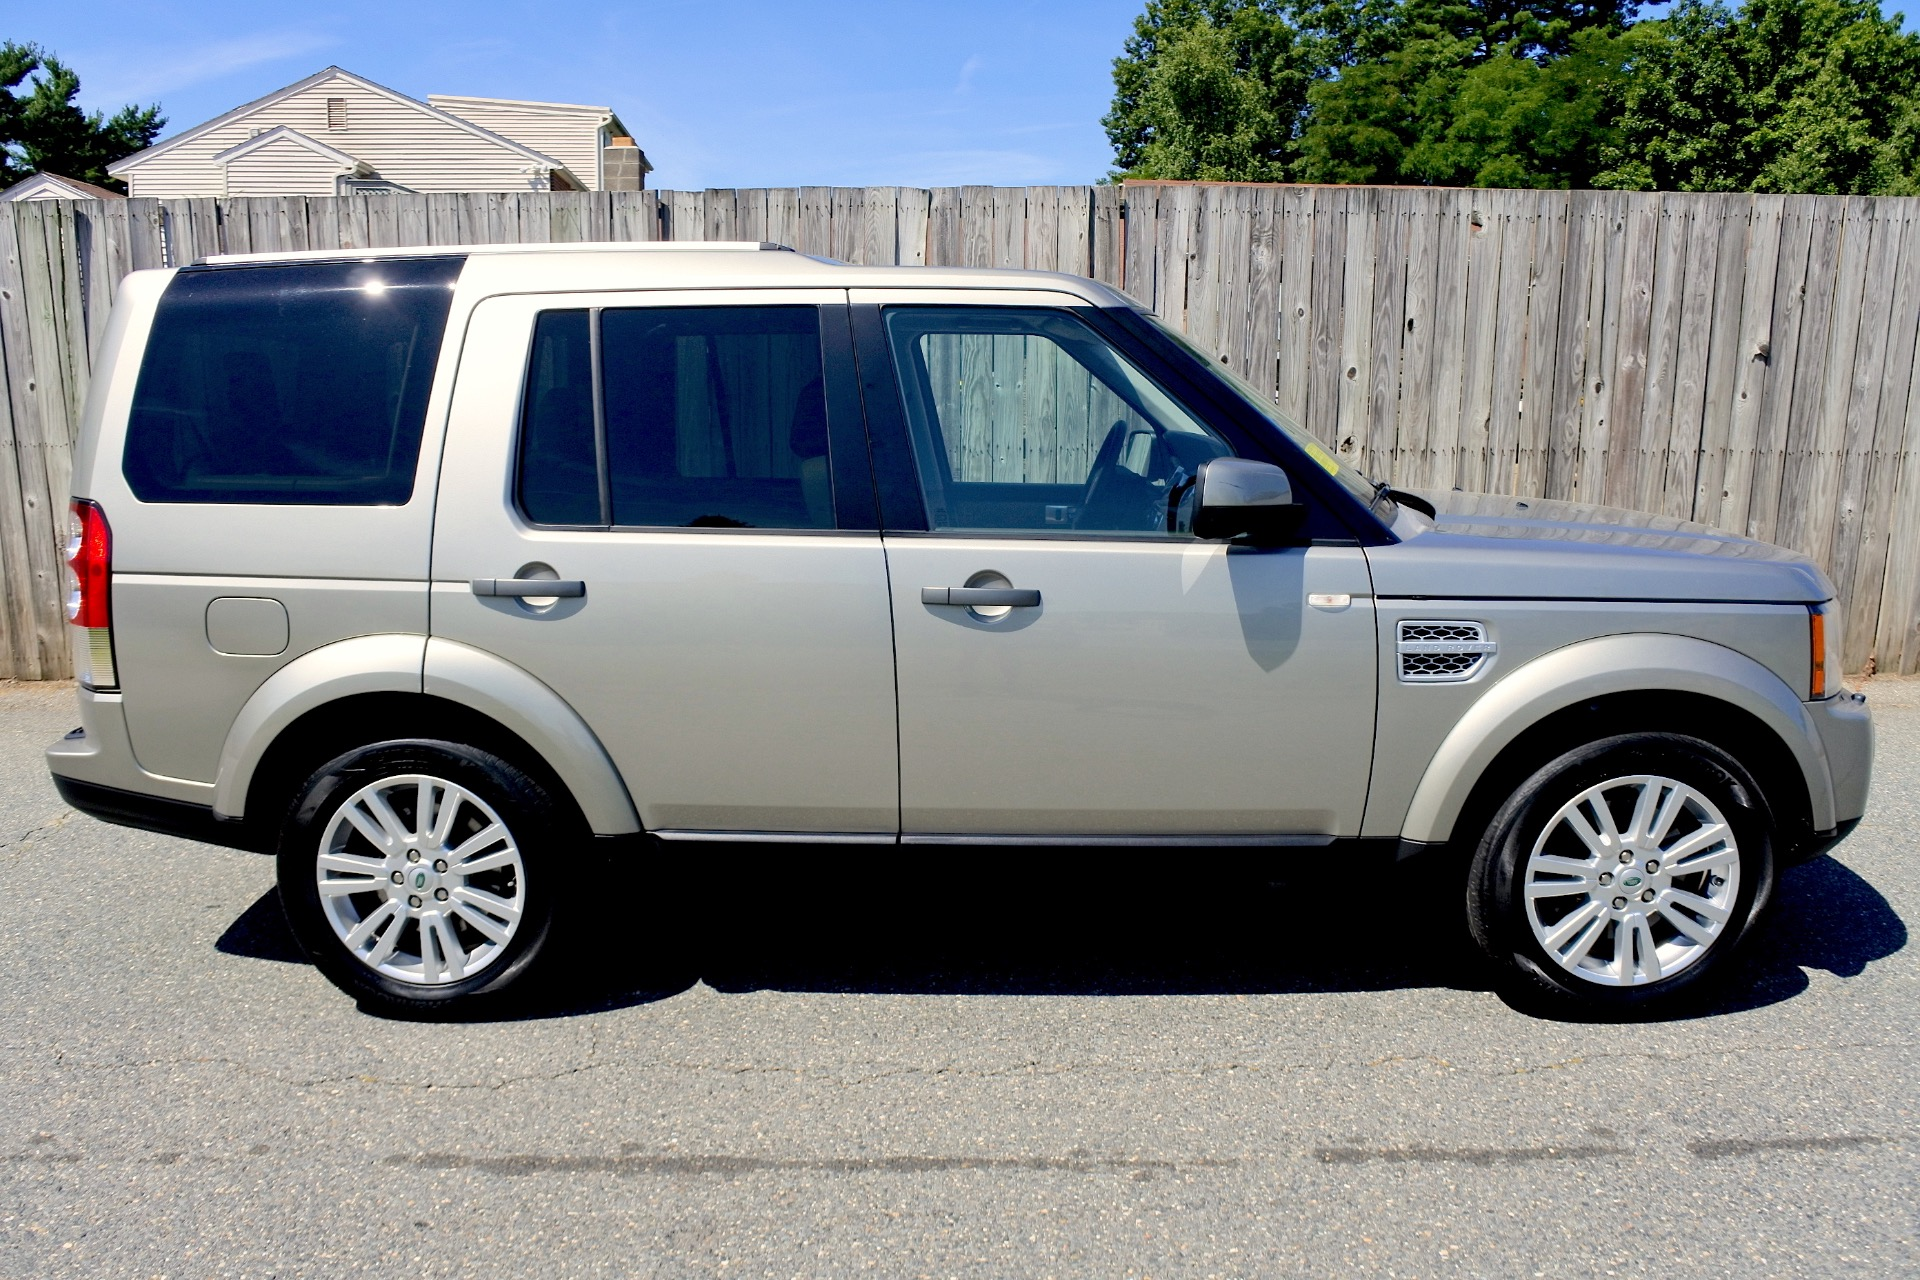 Used 2011 Land Rover Lr4 4WD 4dr V8 HSE Used 2011 Land Rover Lr4 4WD 4dr V8 HSE for sale  at Metro West Motorcars LLC in Shrewsbury MA 6